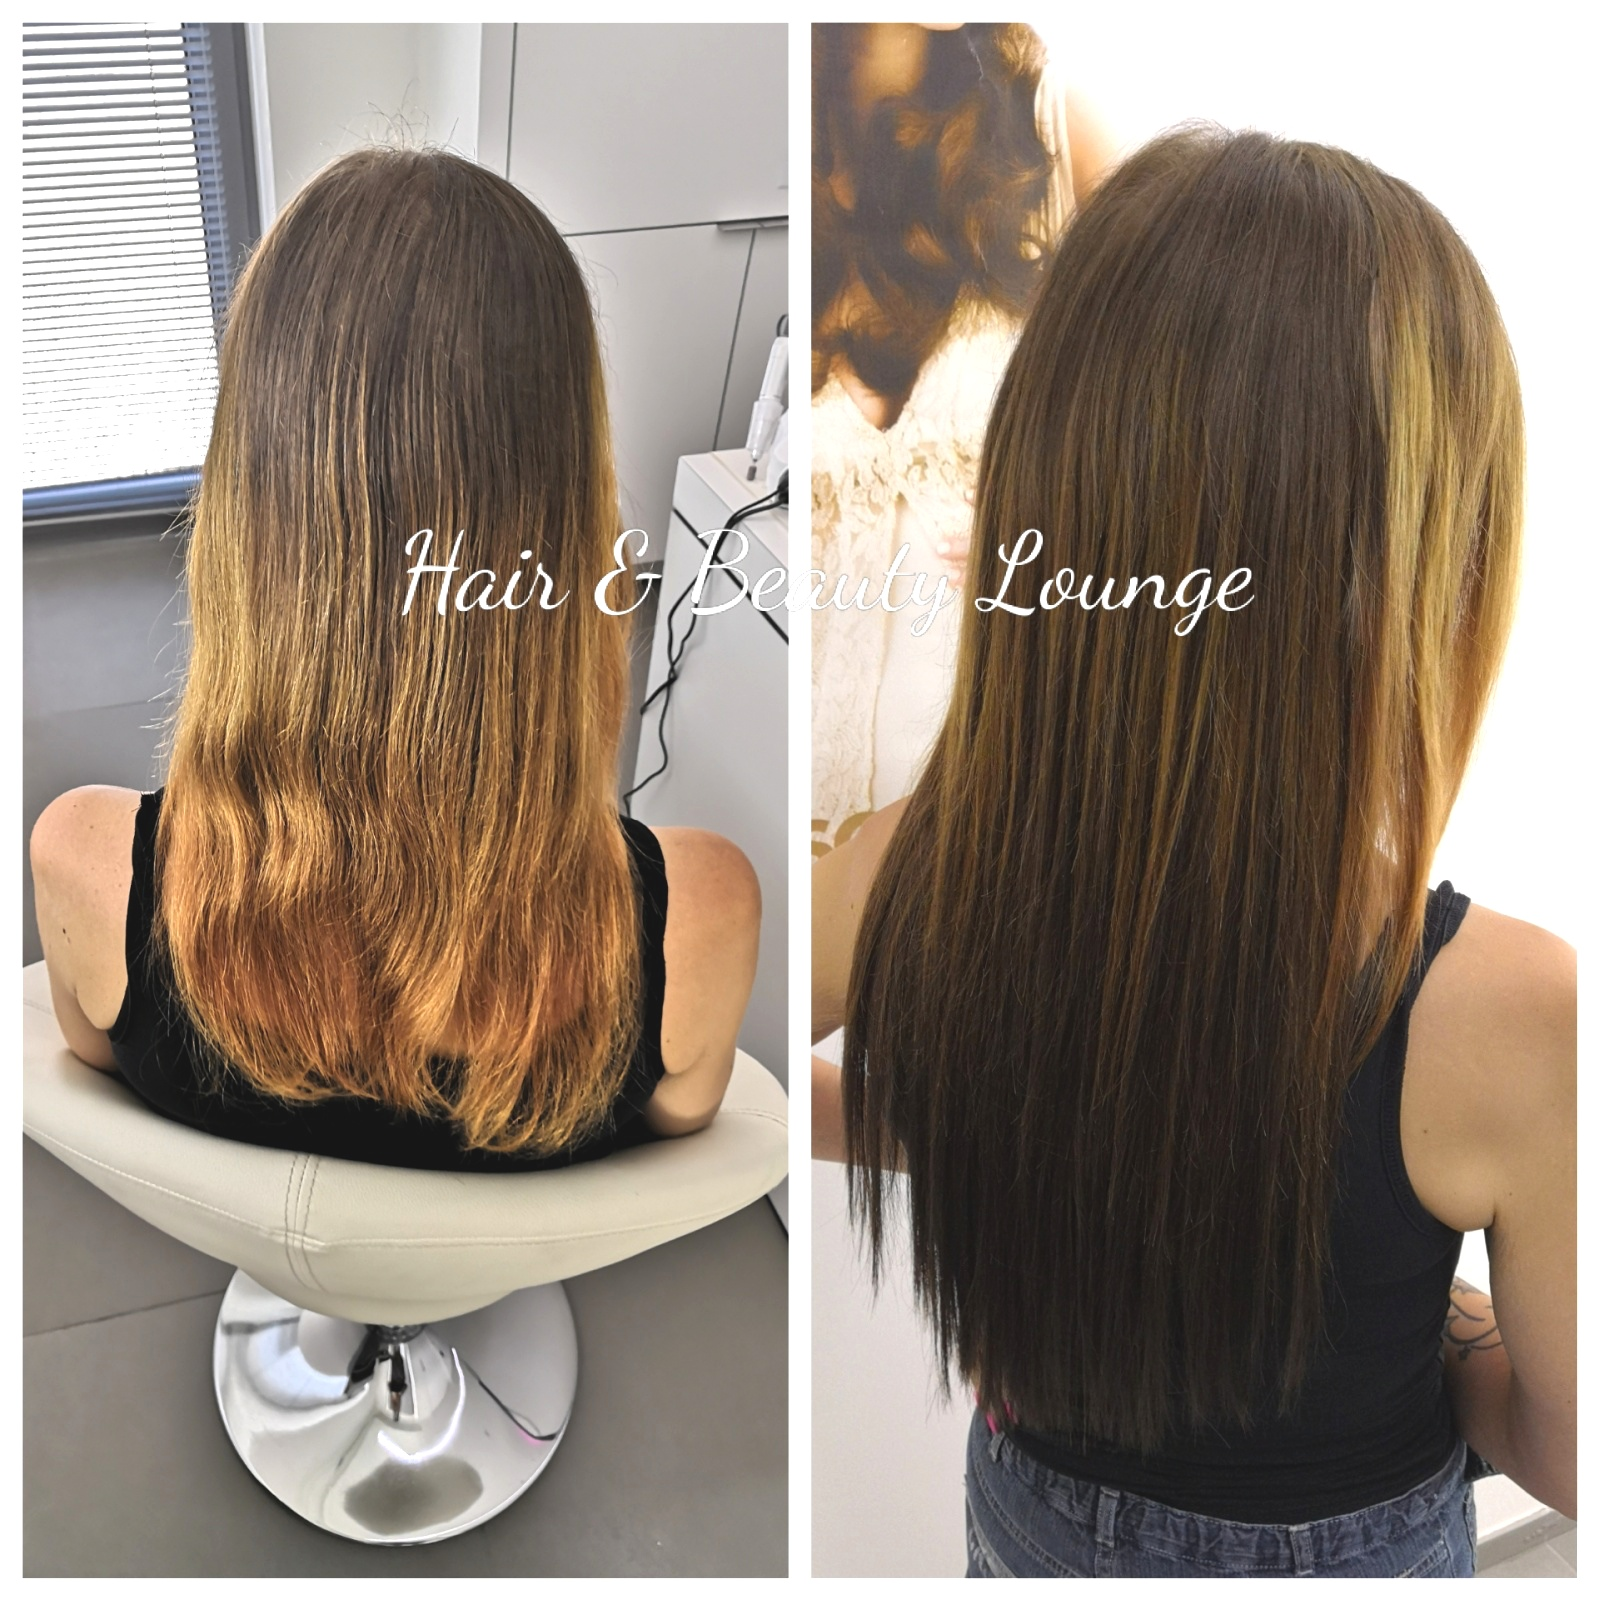 Hairextensions 03-09-2019